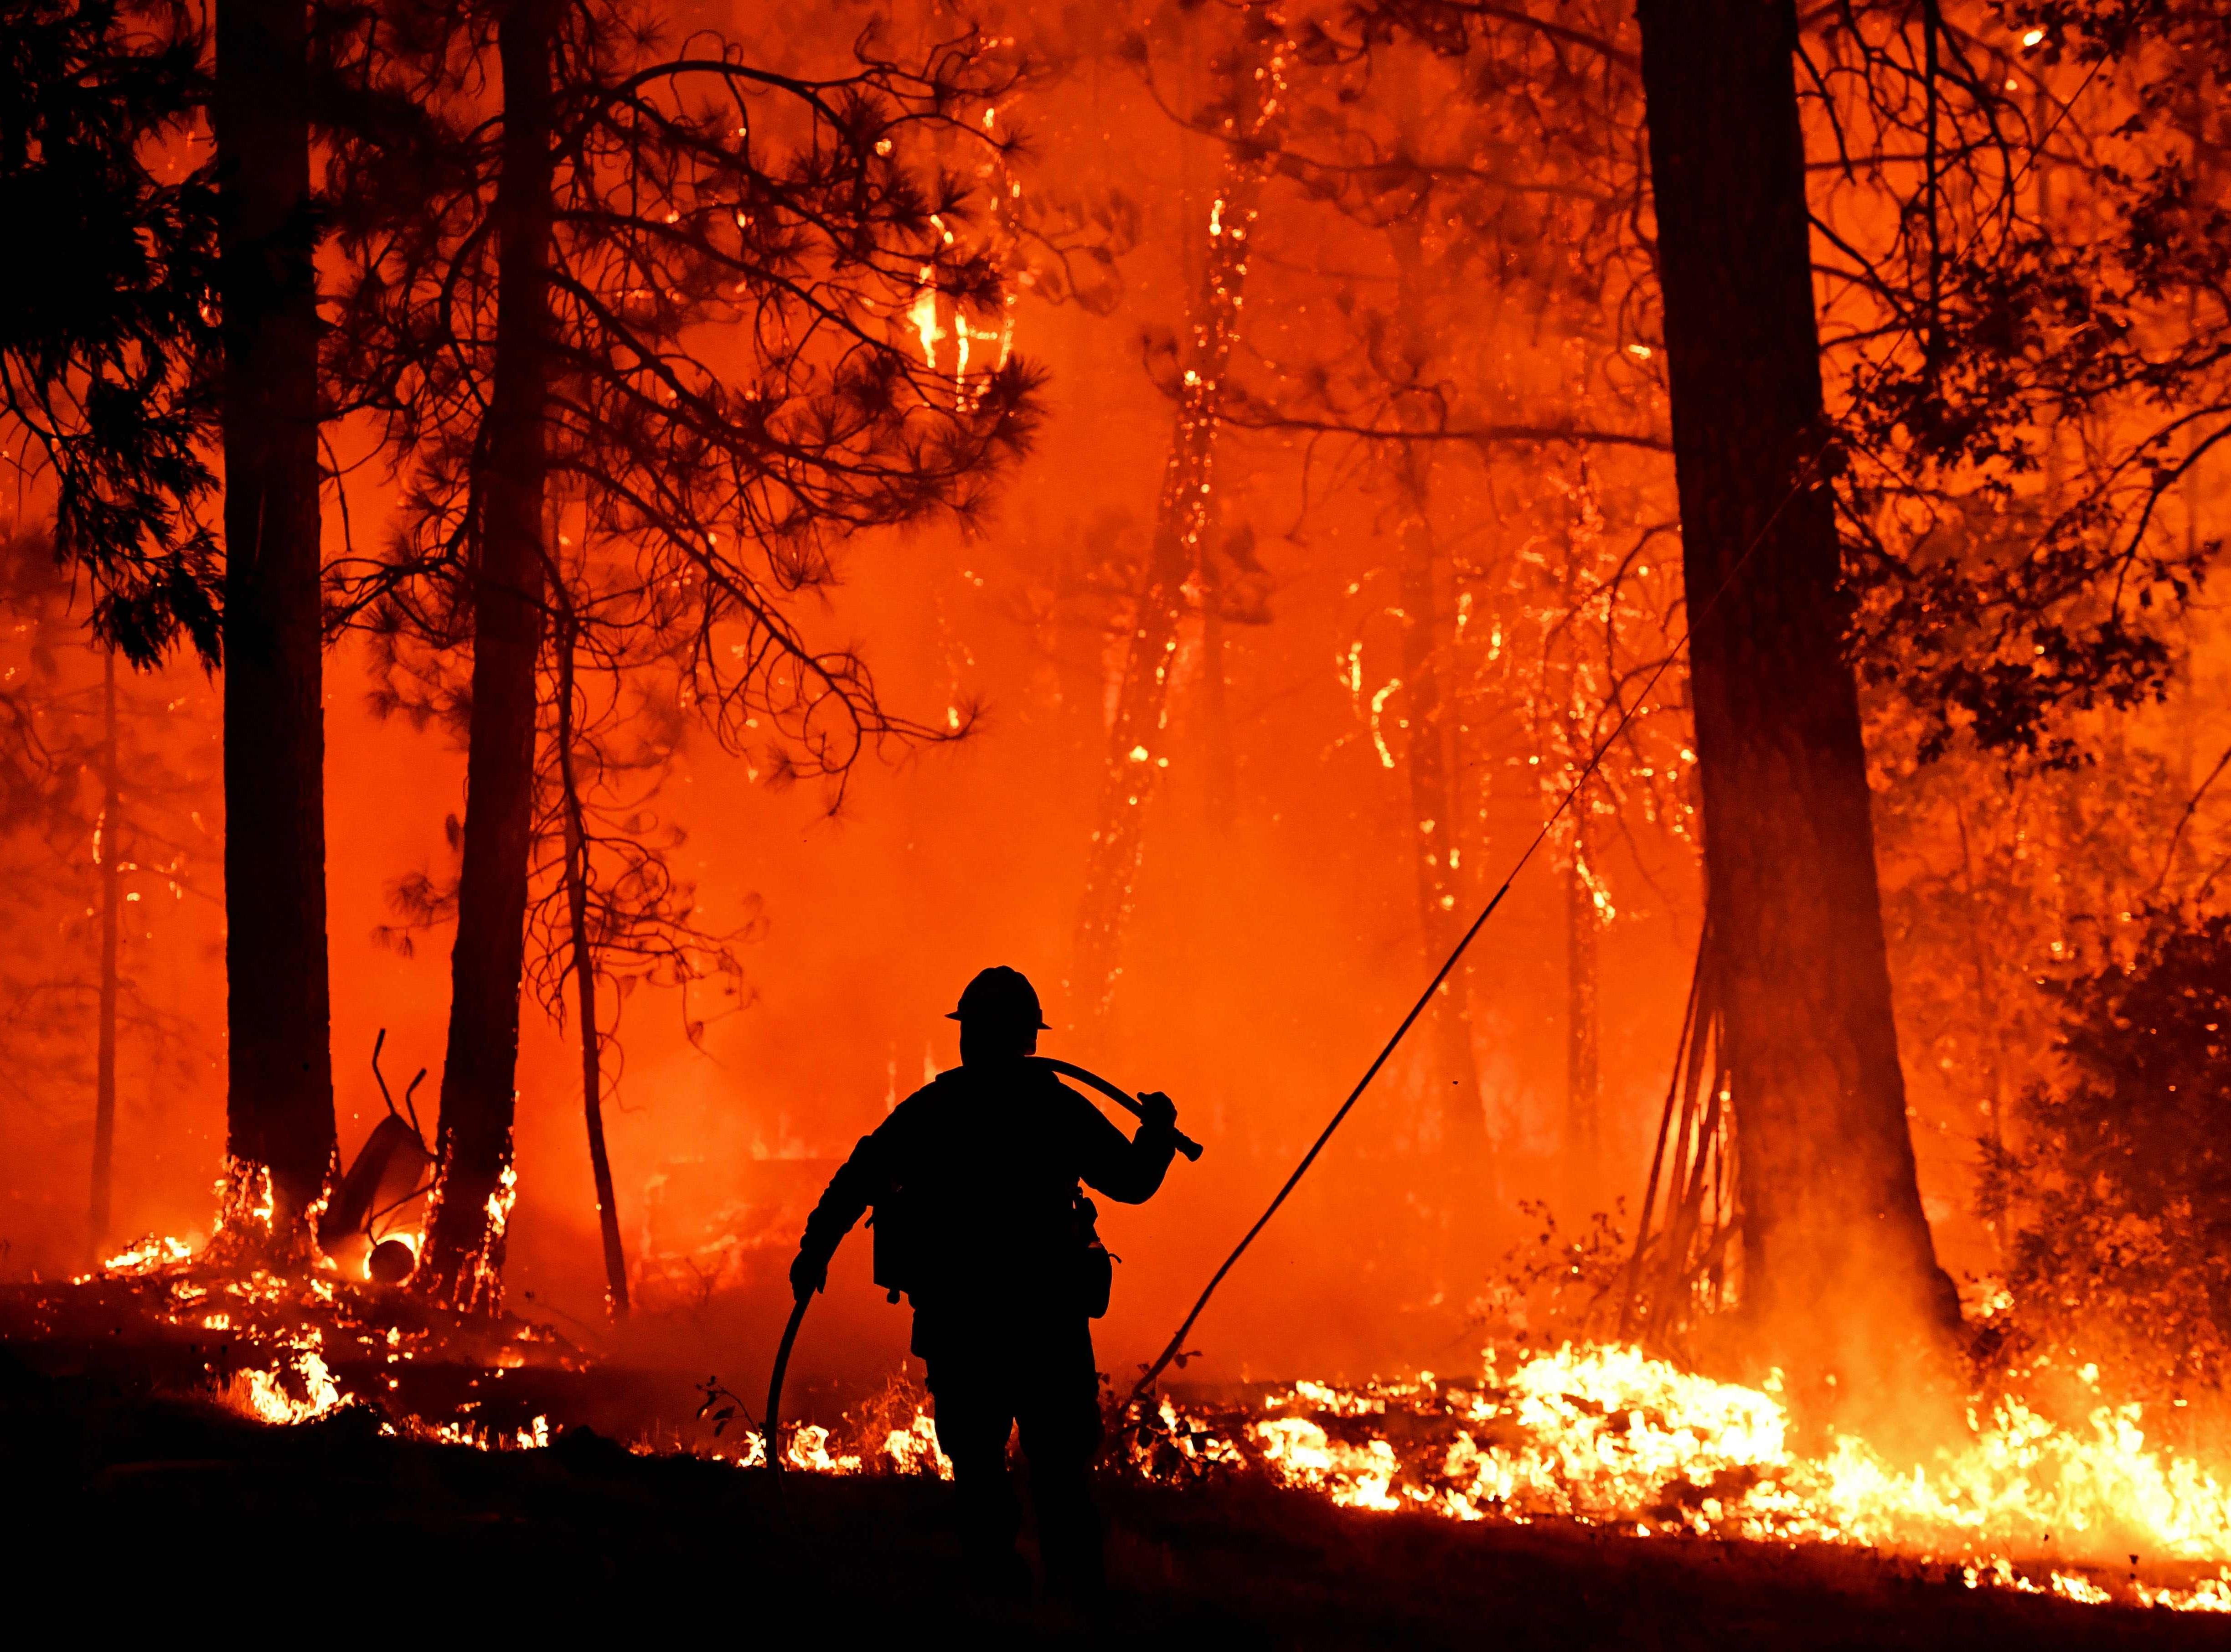 Firefighters struggle to contain backfire in the Pollard Flat area of California in the Shasta Trinity National Forest on September 6, 2018.